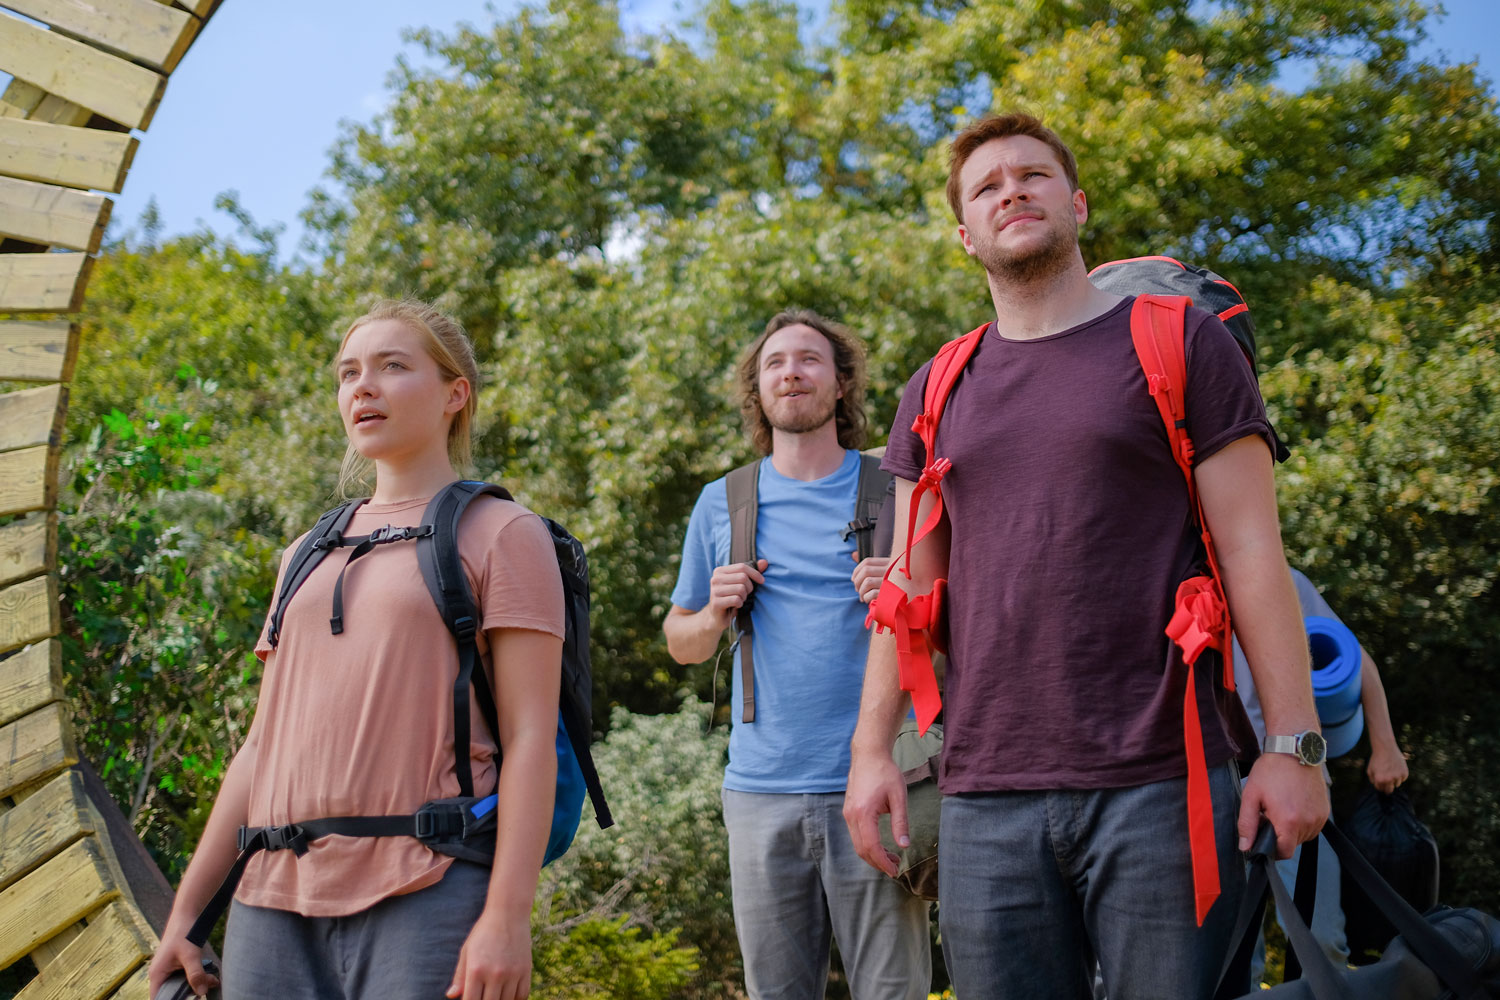 'Midsommar' Gets the Goofy Rom-Com Treatment in Latest Trailer